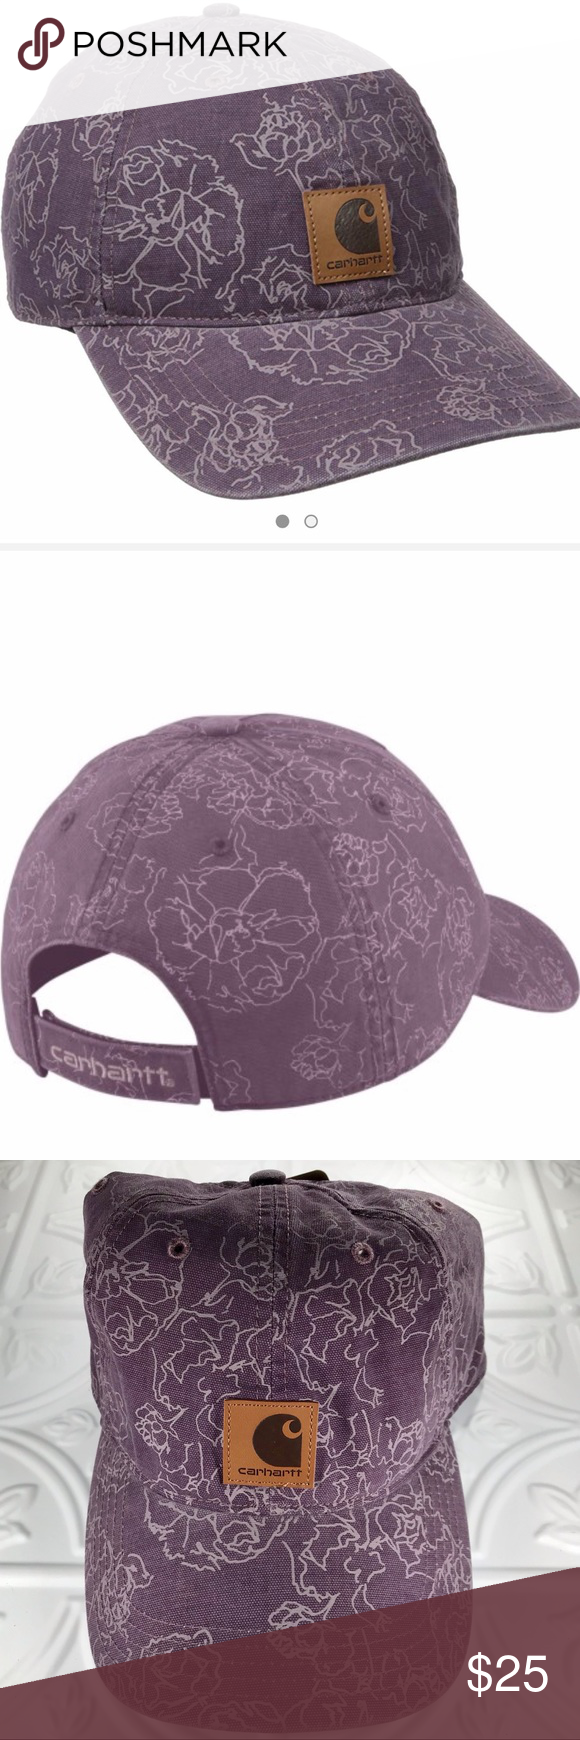 Carhartt Women Floral Print Baseball Hat Outdoor Carhartt Women Purple Floral Baseball Hat  New with Tags  Color: Purple with Gray Floral Print  Size: One Size Fits All   Carhartt Force Sweatband Fights Odors FastDry technology for quick wicking of sweat Adjustable Velcro closure  Carhartt logo sewn on front Light structure  Medium profile Pre-curved visor 100% Cotton Carhartt Accessories Hats #carharttwomen